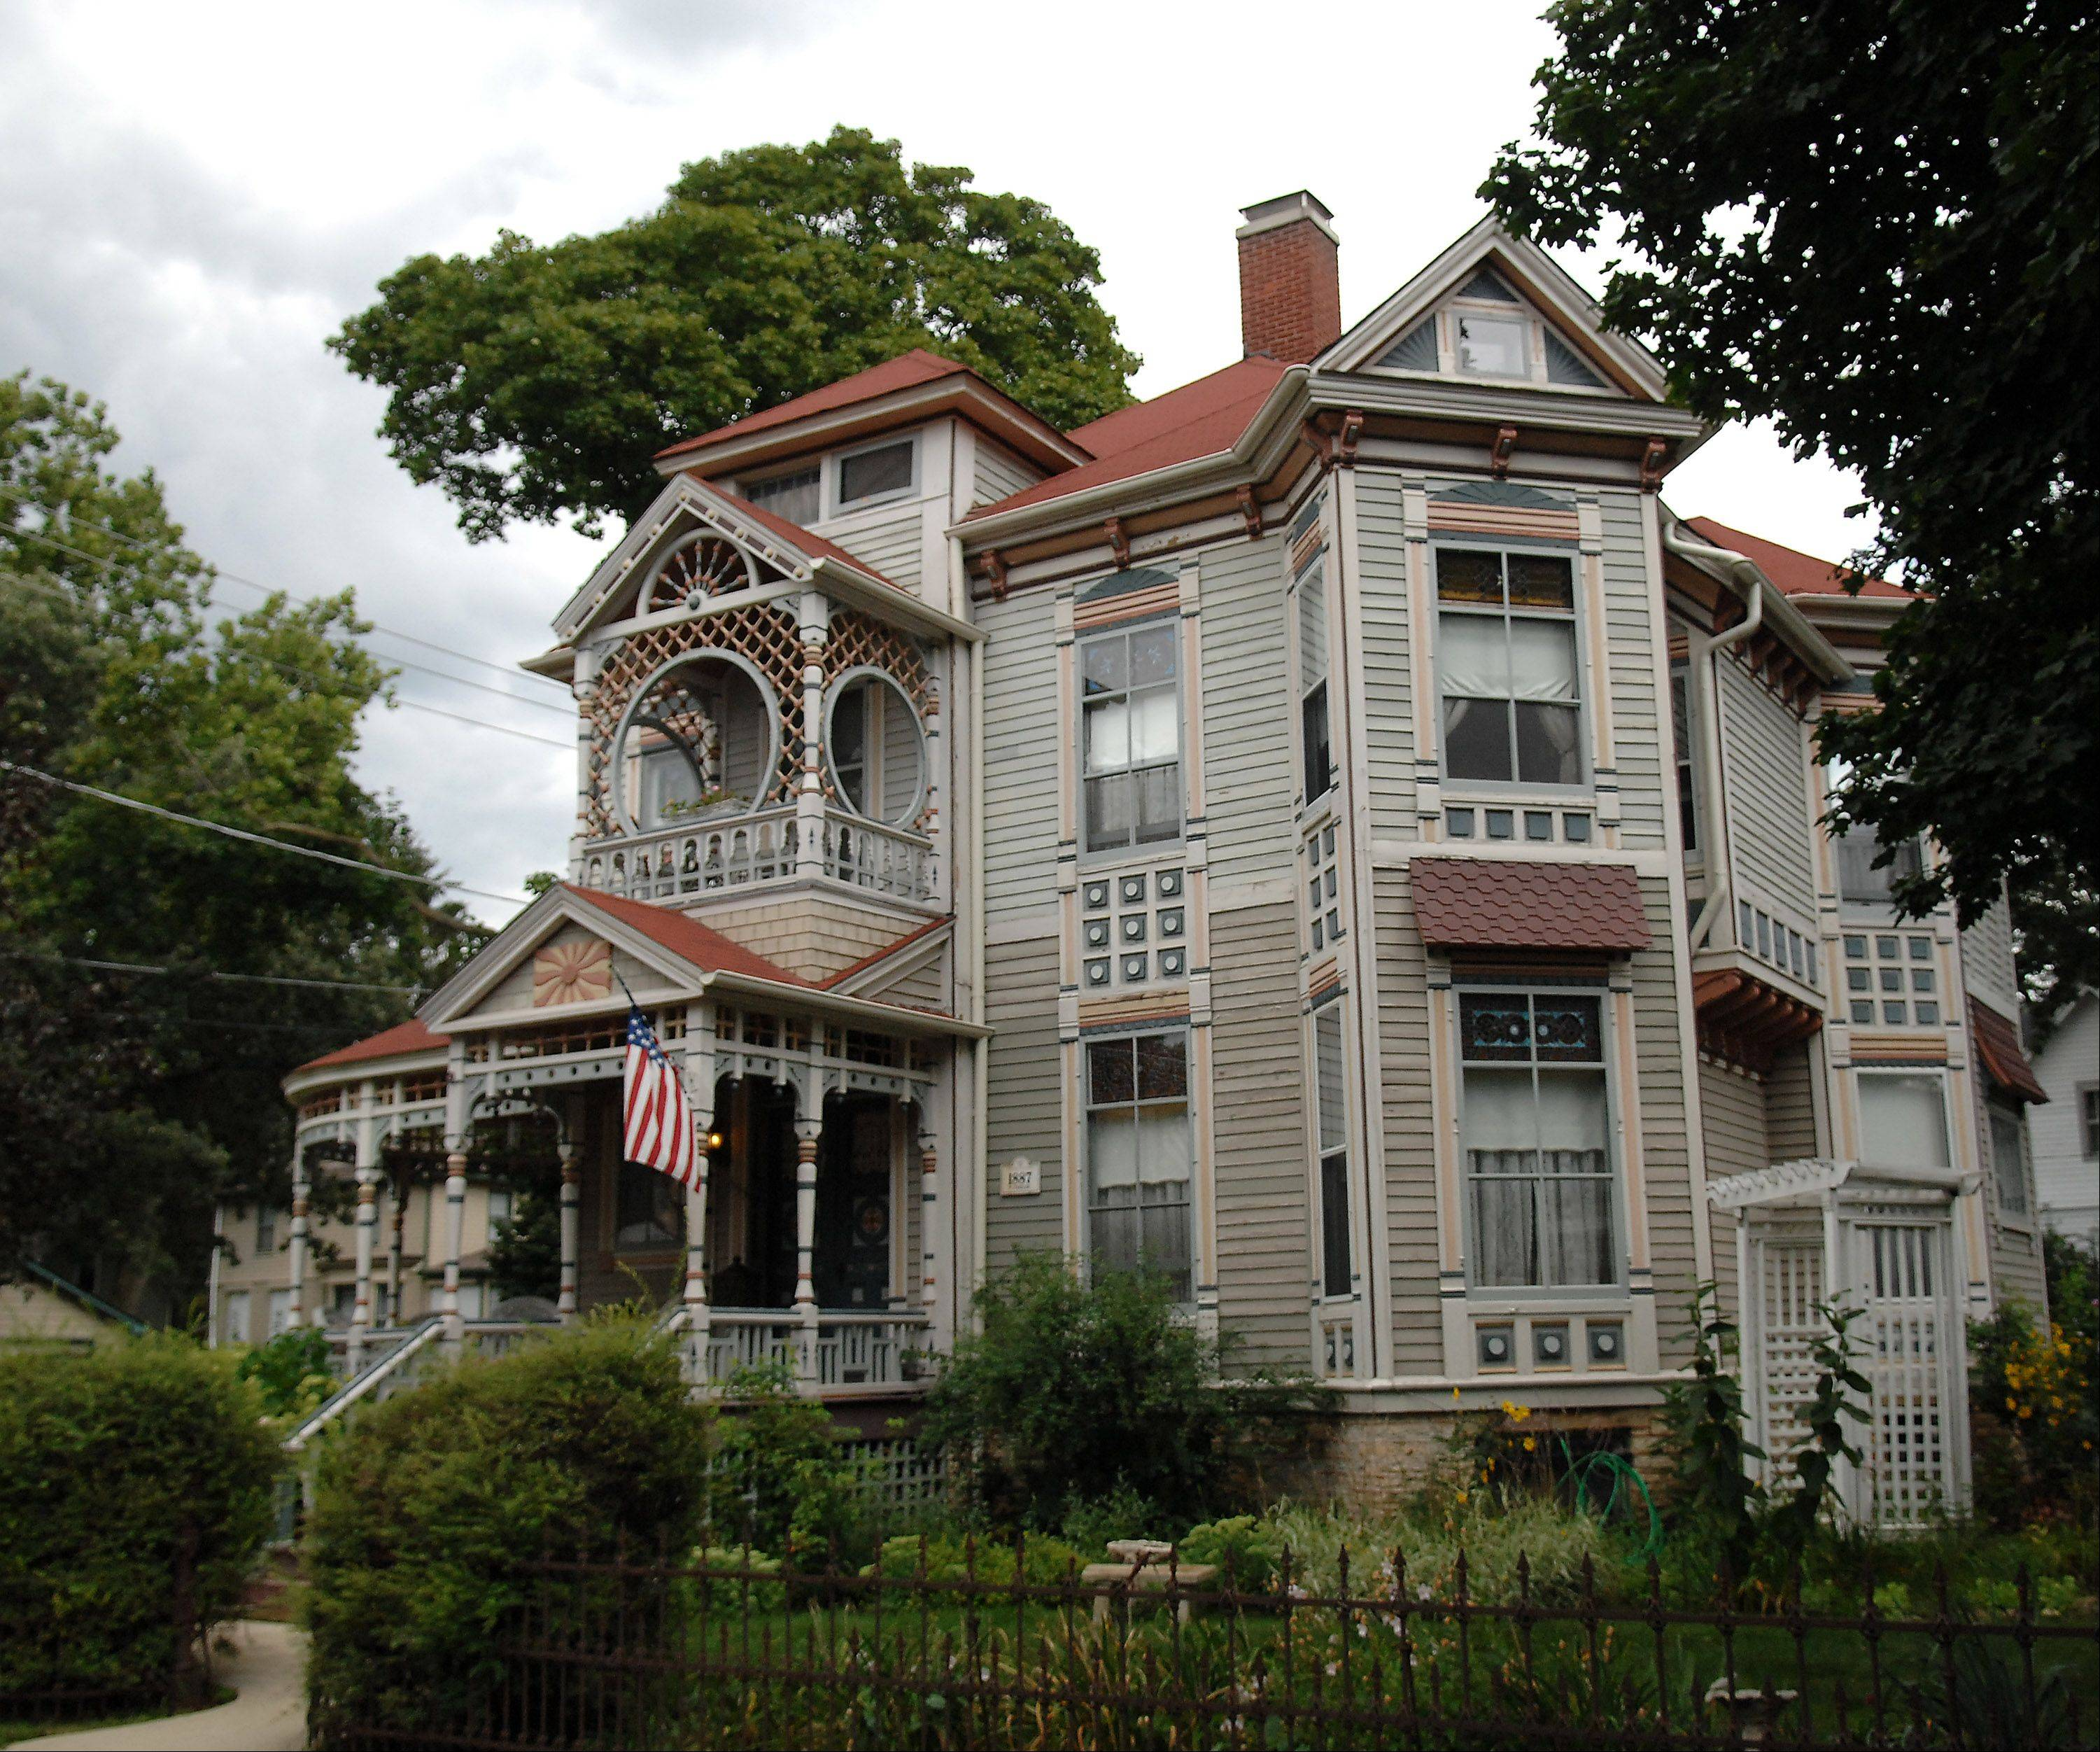 Twelve requests for historic architectural rehabilitation grant were approved recently by the Elgin City Council's committee of the whole, including one for a home owned by Steve Stroud at 653 Douglas Ave.